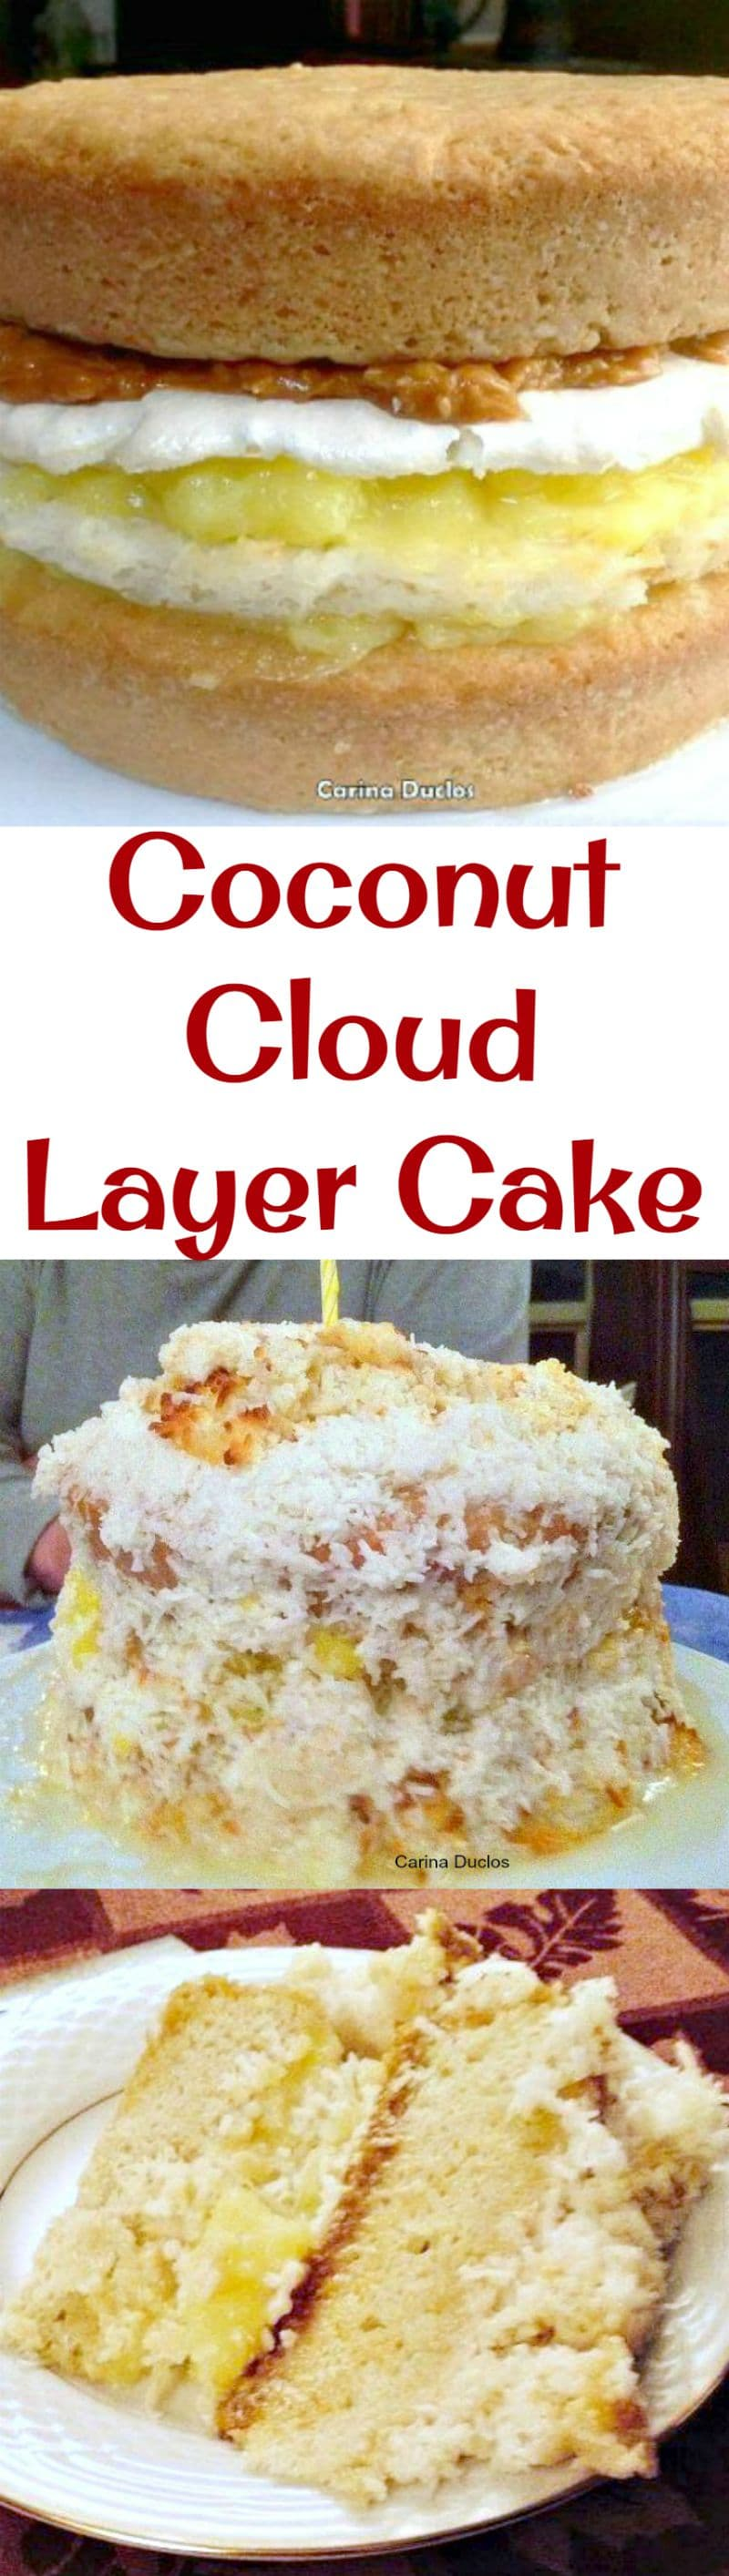 Coconut Cloud Layer Cake. Layers of cake, meringue,macaroons, lemon, dulce de leche and coconut makes this cake fit for a celebration that's for sure! This does take some work, but for a special occasion and if you're looking for something a little different from your average celebration cake, this is the one which will turn heads!